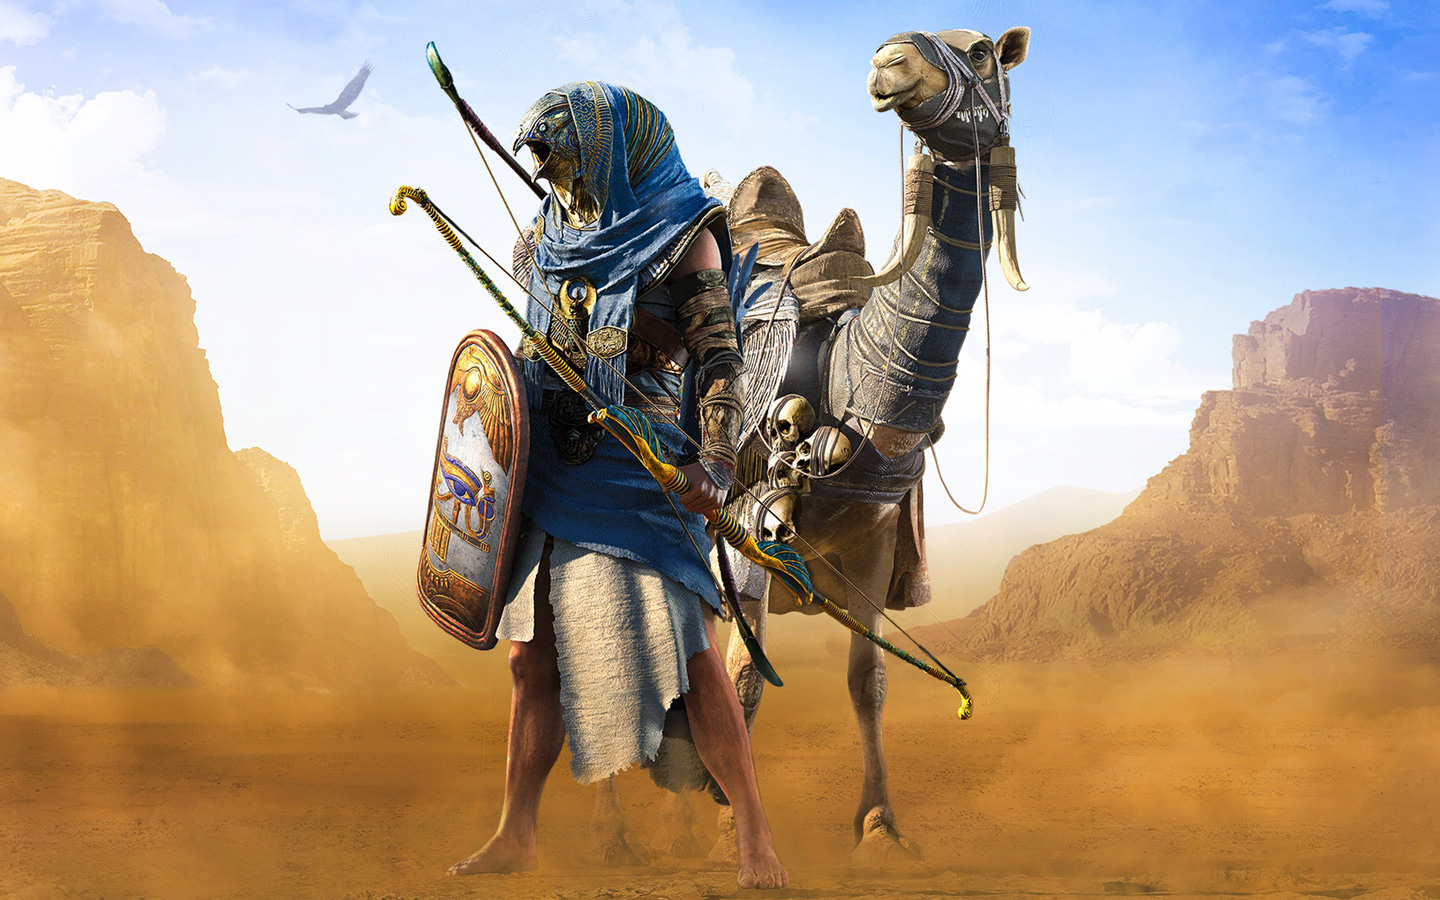 Free Assassin's Creed Origins Wallpaper in 1440x900